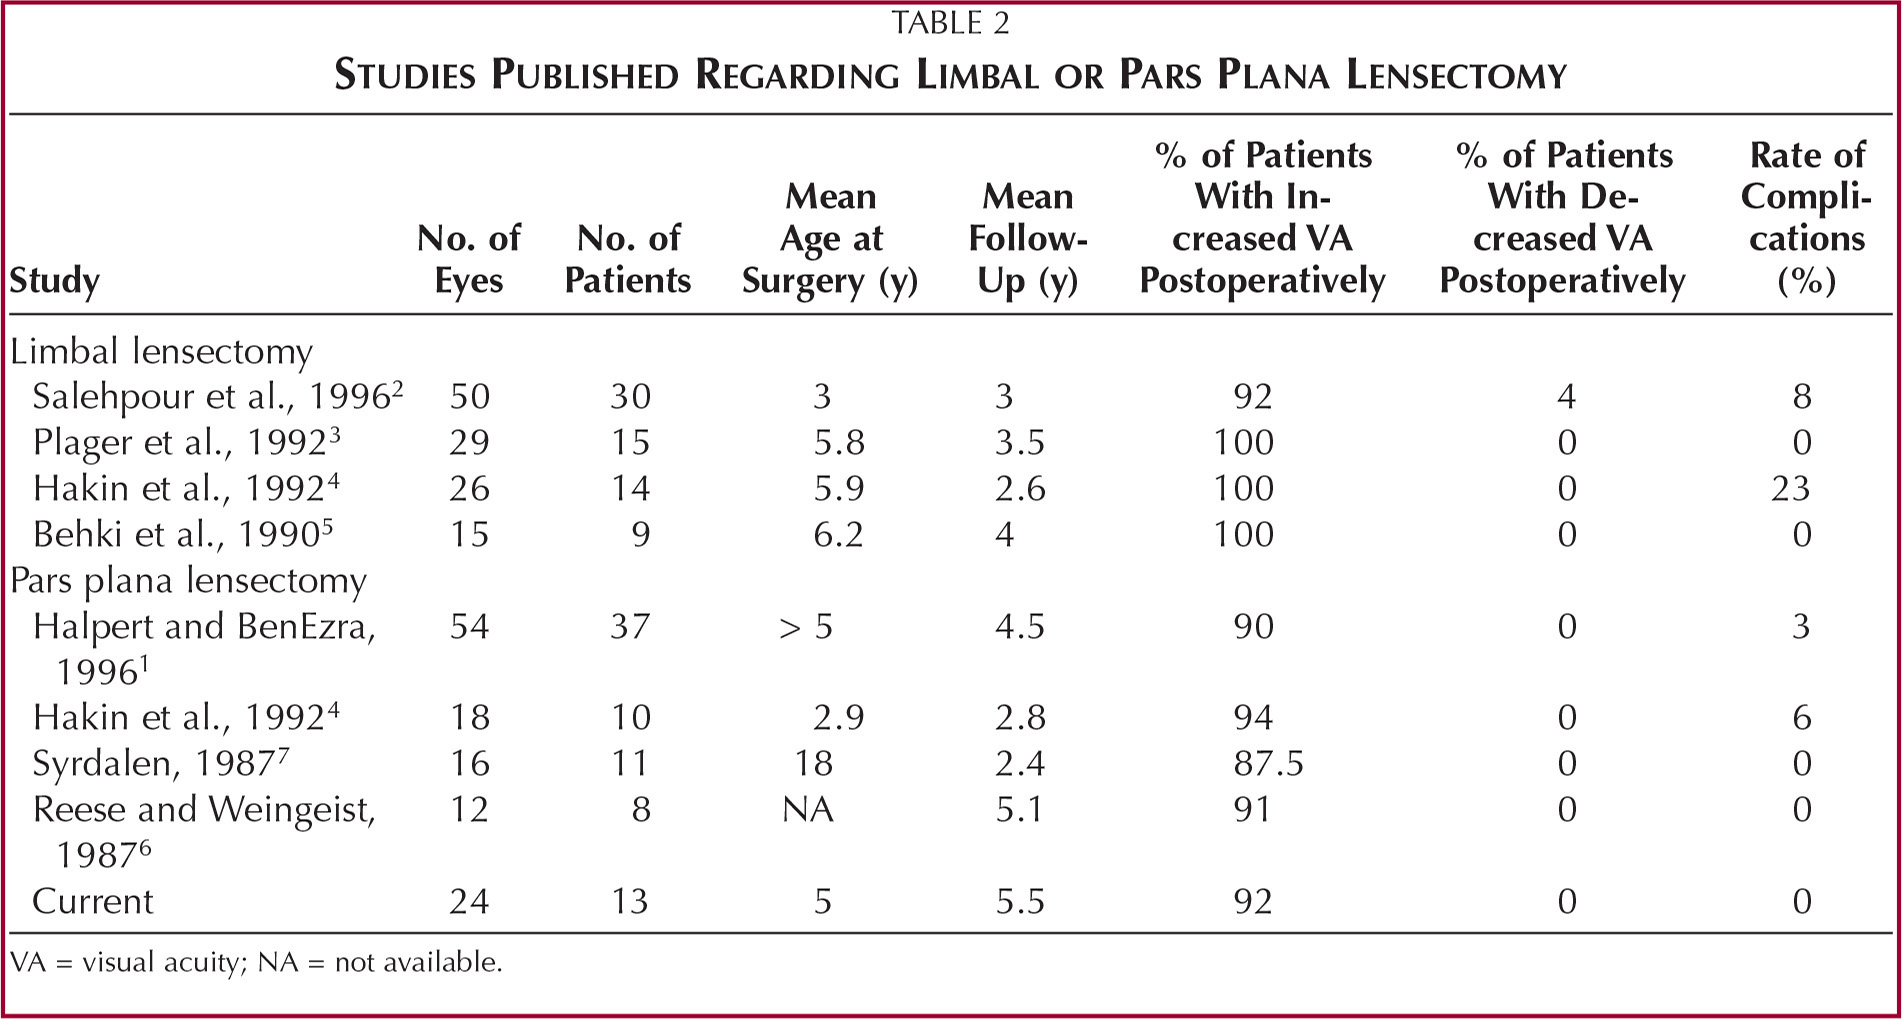 Studies Published Regarding Limbal or Pars Plana Lensectomy